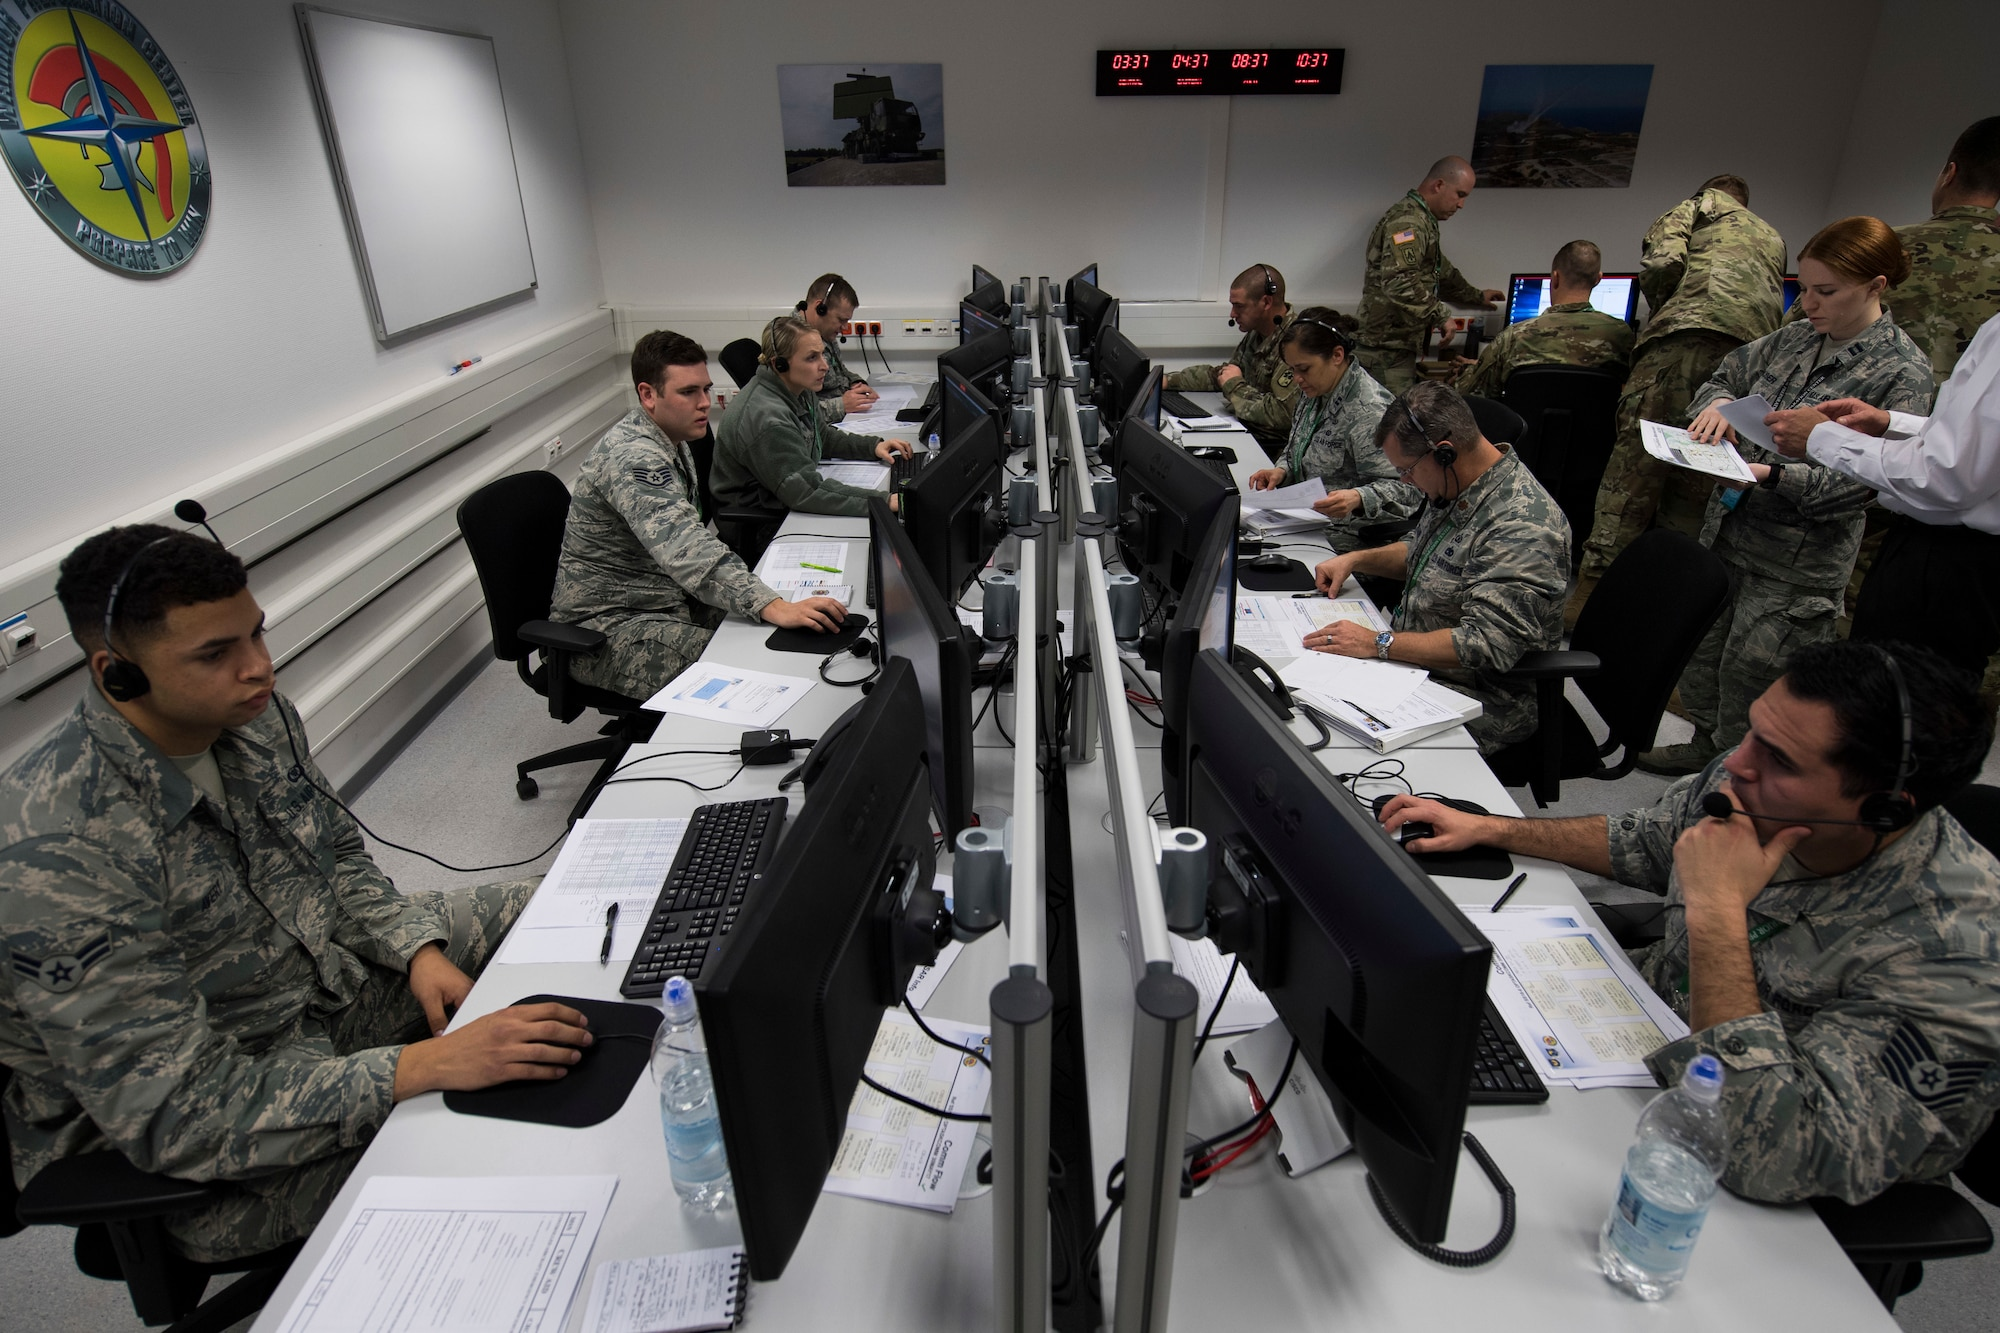 The U.S. Air Forces in Europe Warrior Preparation Center held the first U.S. Air Force and U.S. Army integrated Patriot missile defense exercise at Einsiedlerhof Air Station, Germany, April 12-18.